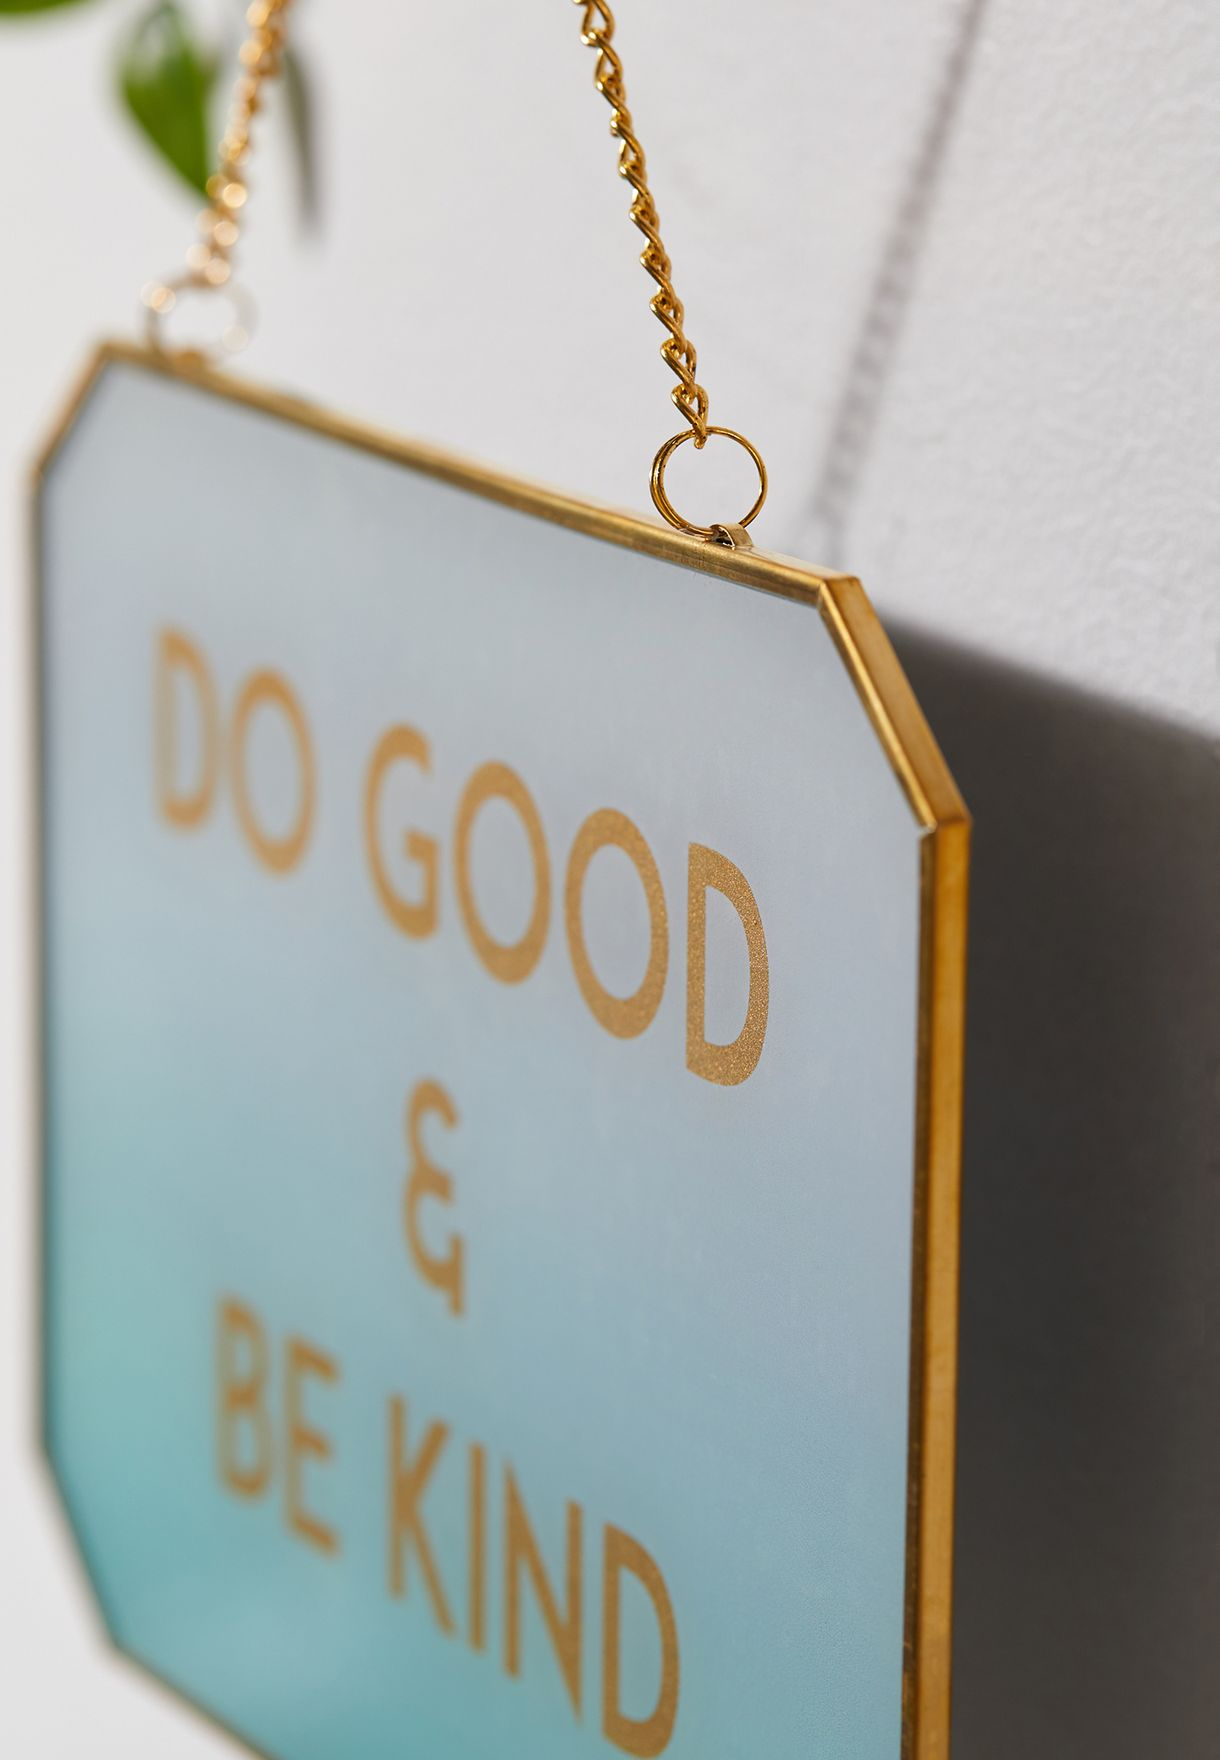 Do Good & Be Kind Hanging Glass Plaque - 20cm